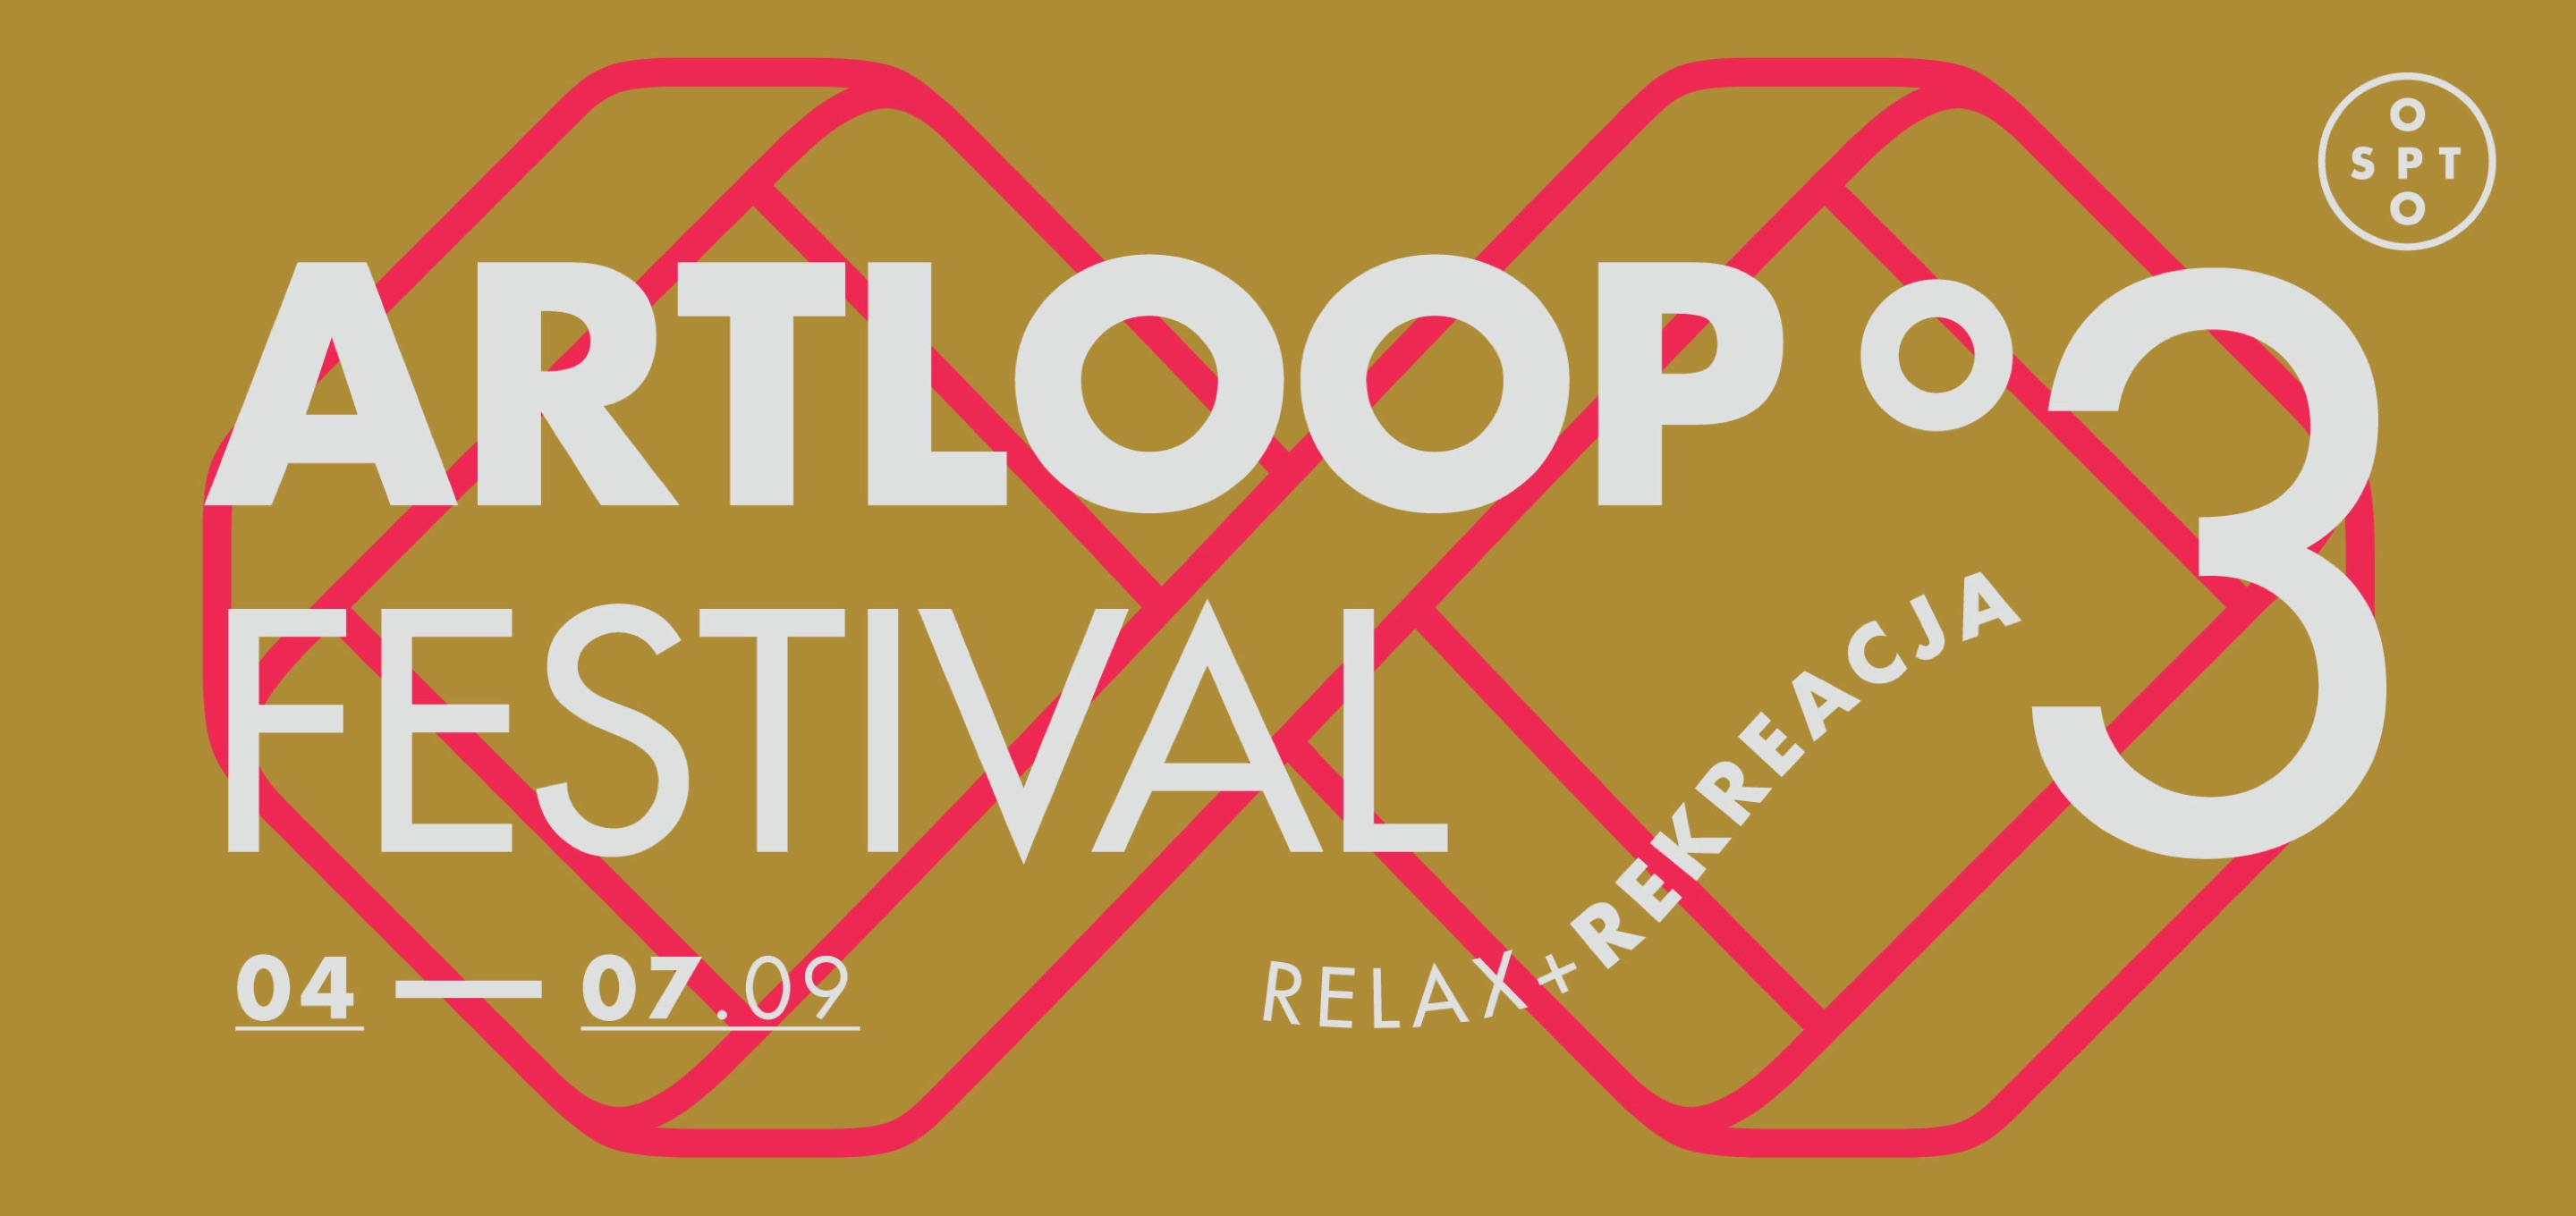 Artloop Festival 2014 by Uniforma Studio